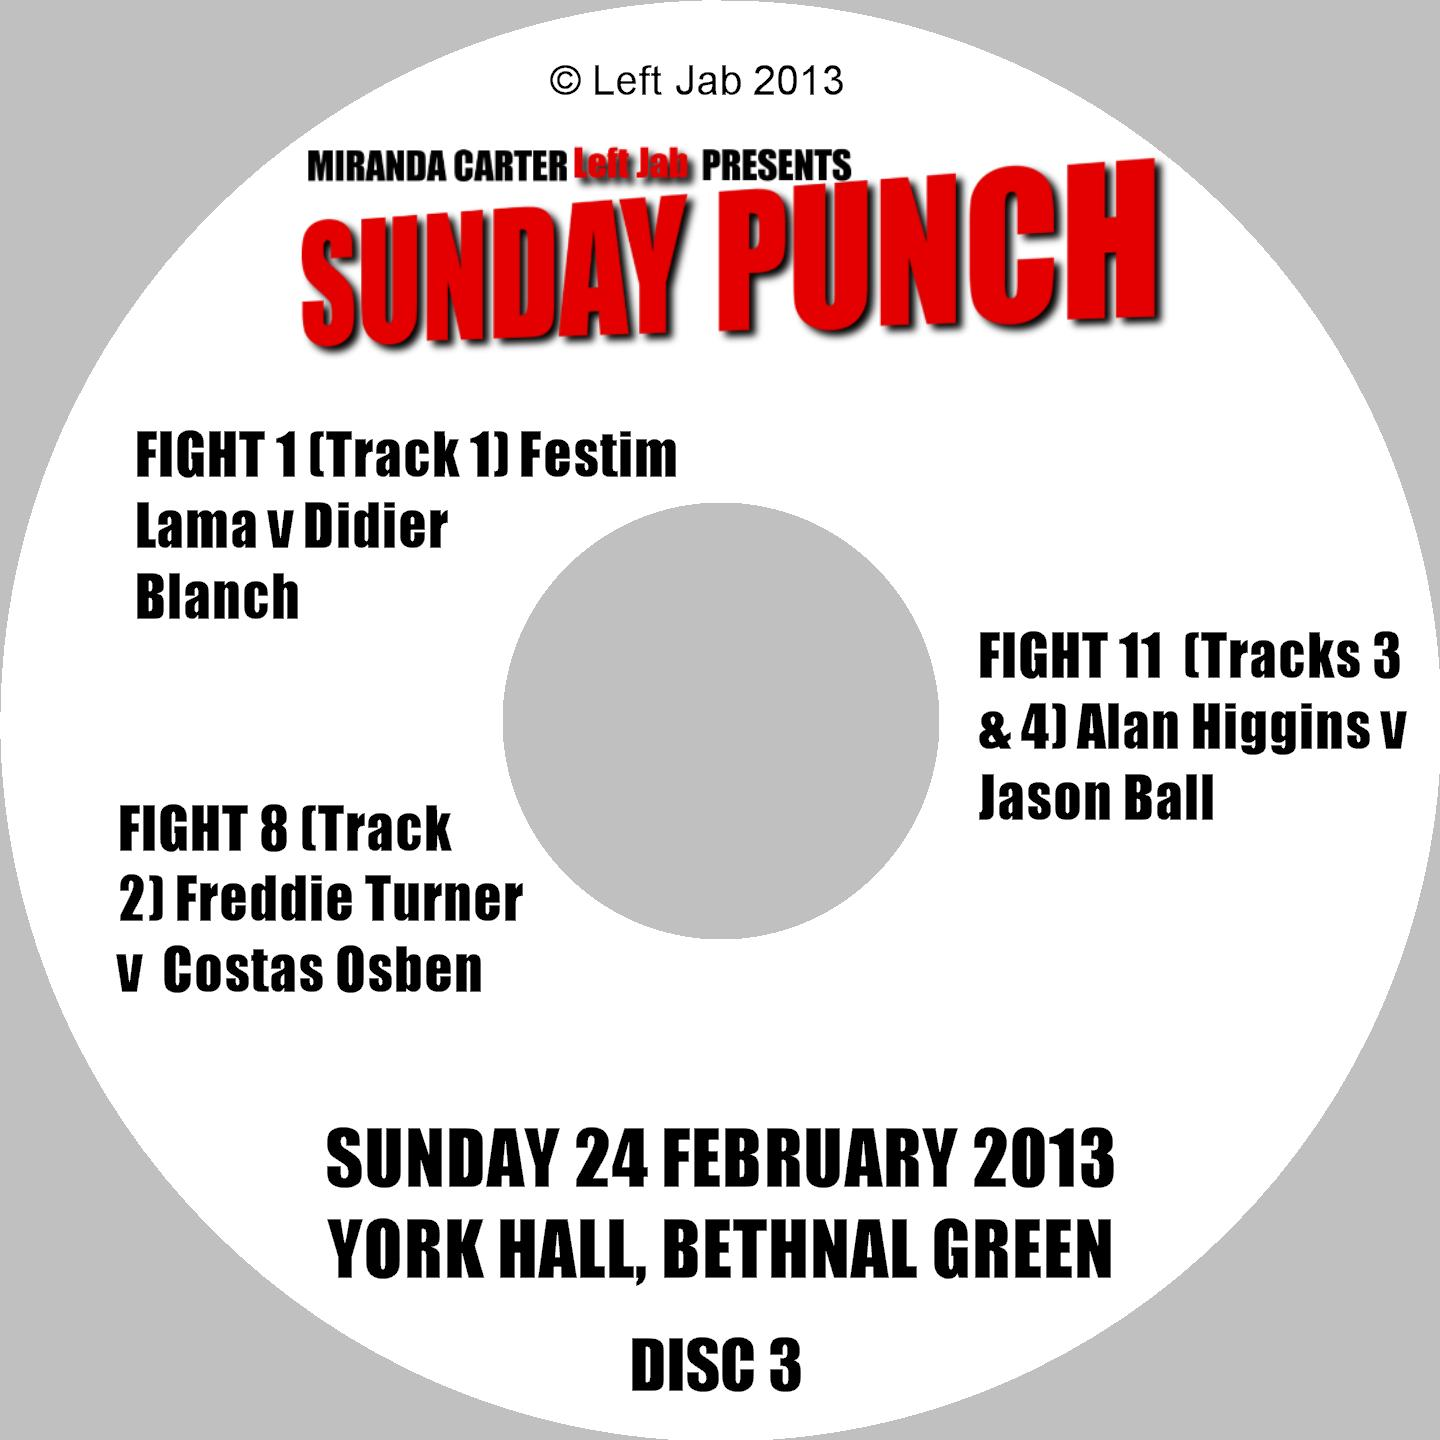 Sunday Punch DVD